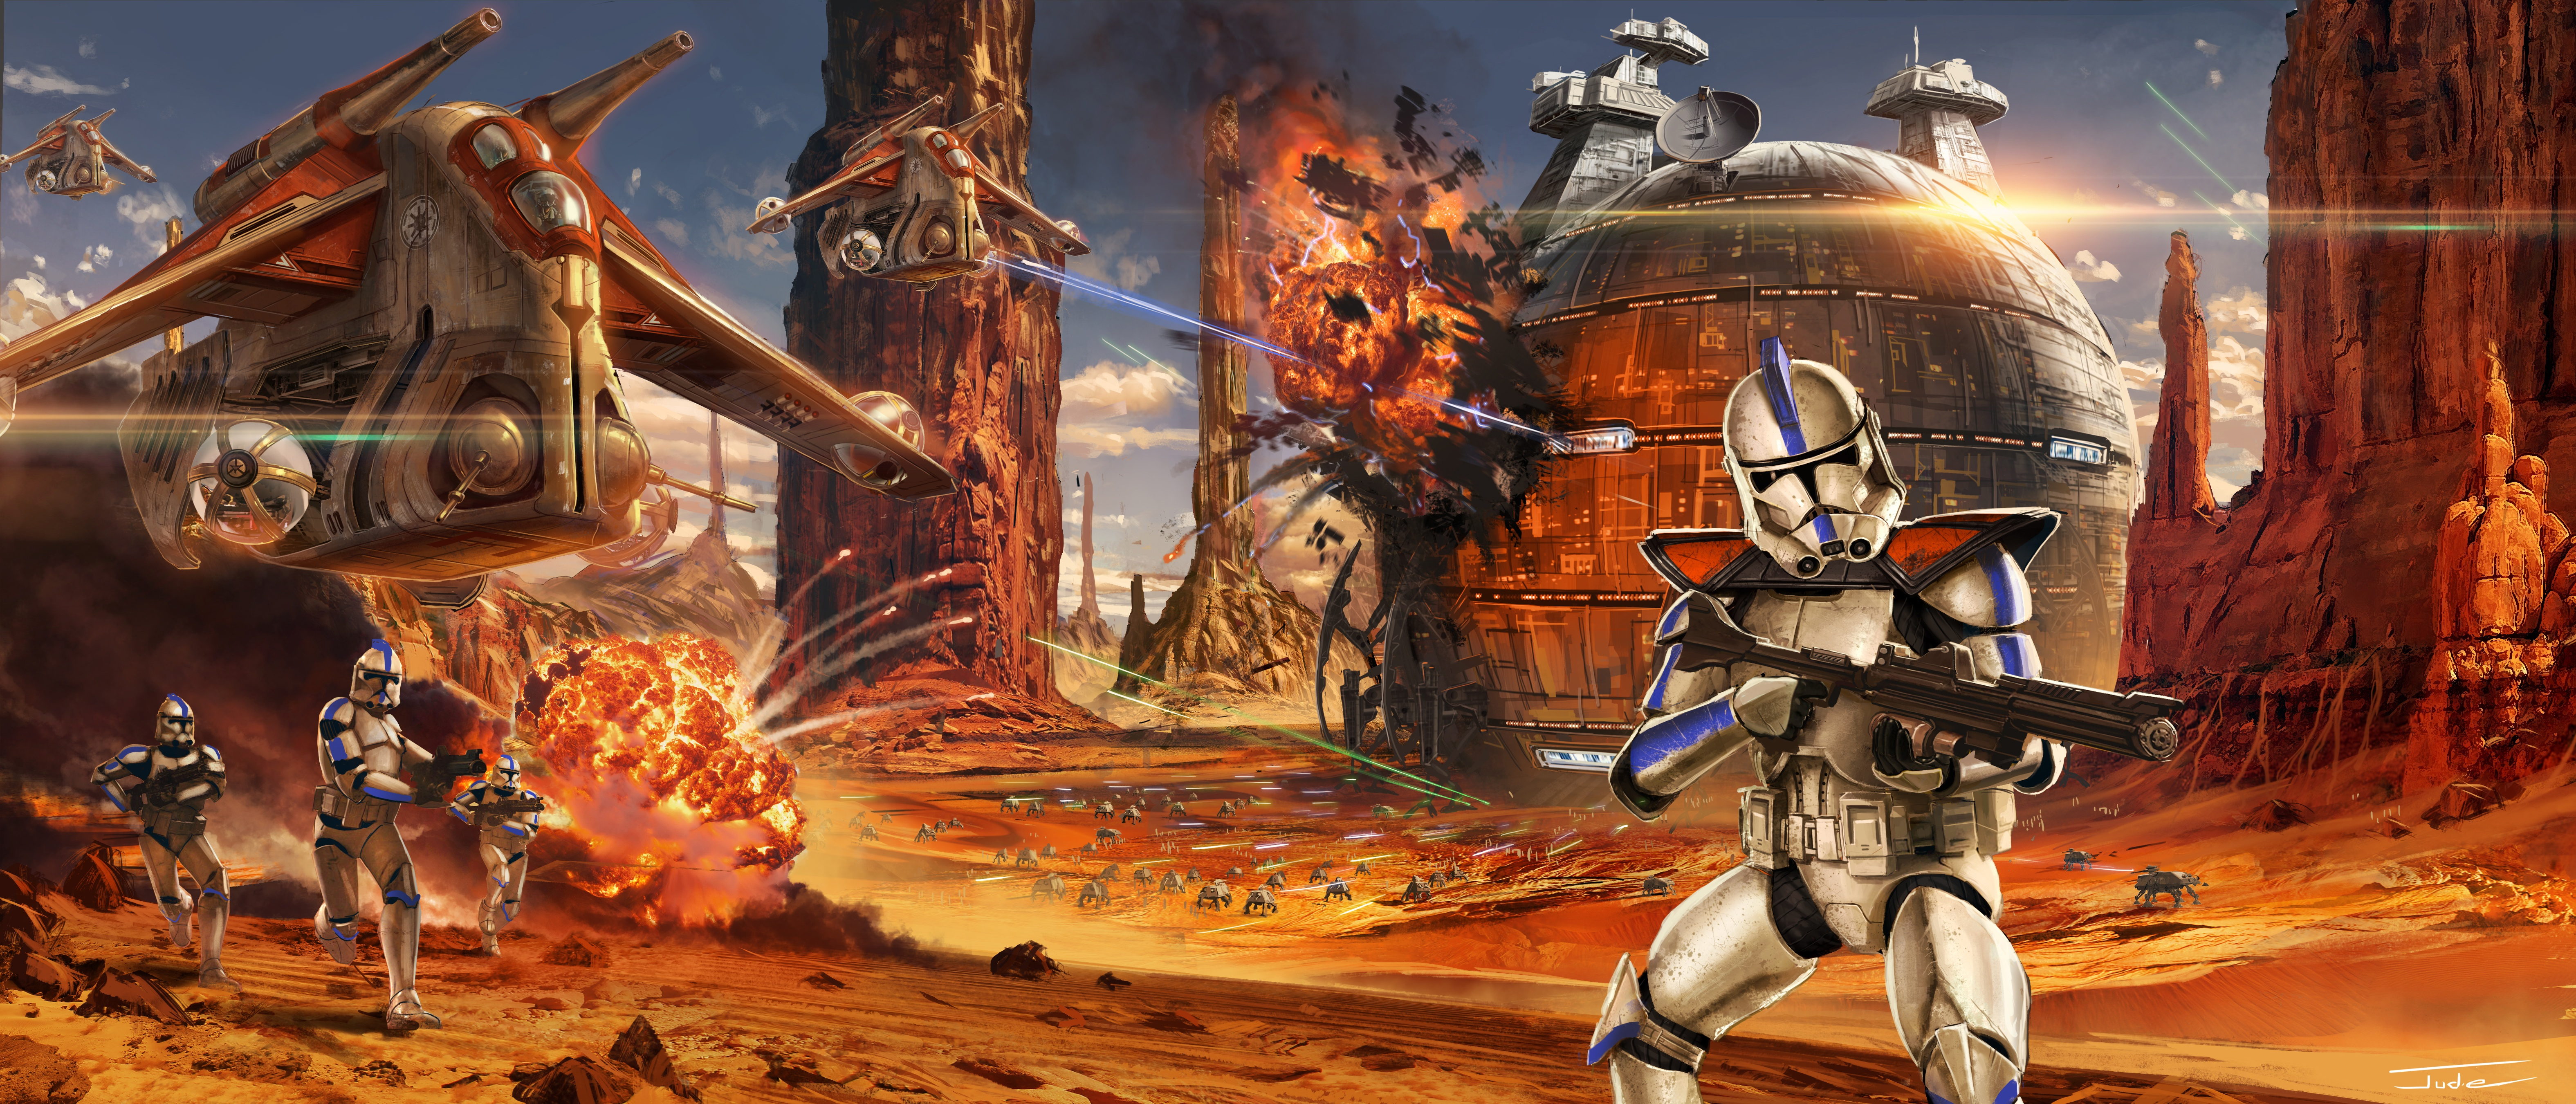 2048x1152 Star Wars Artwork Geonosis Clone Trooper 2048x1152 Resolution Hd 4k Wallpapers Images Backgrounds Photos And Pictures